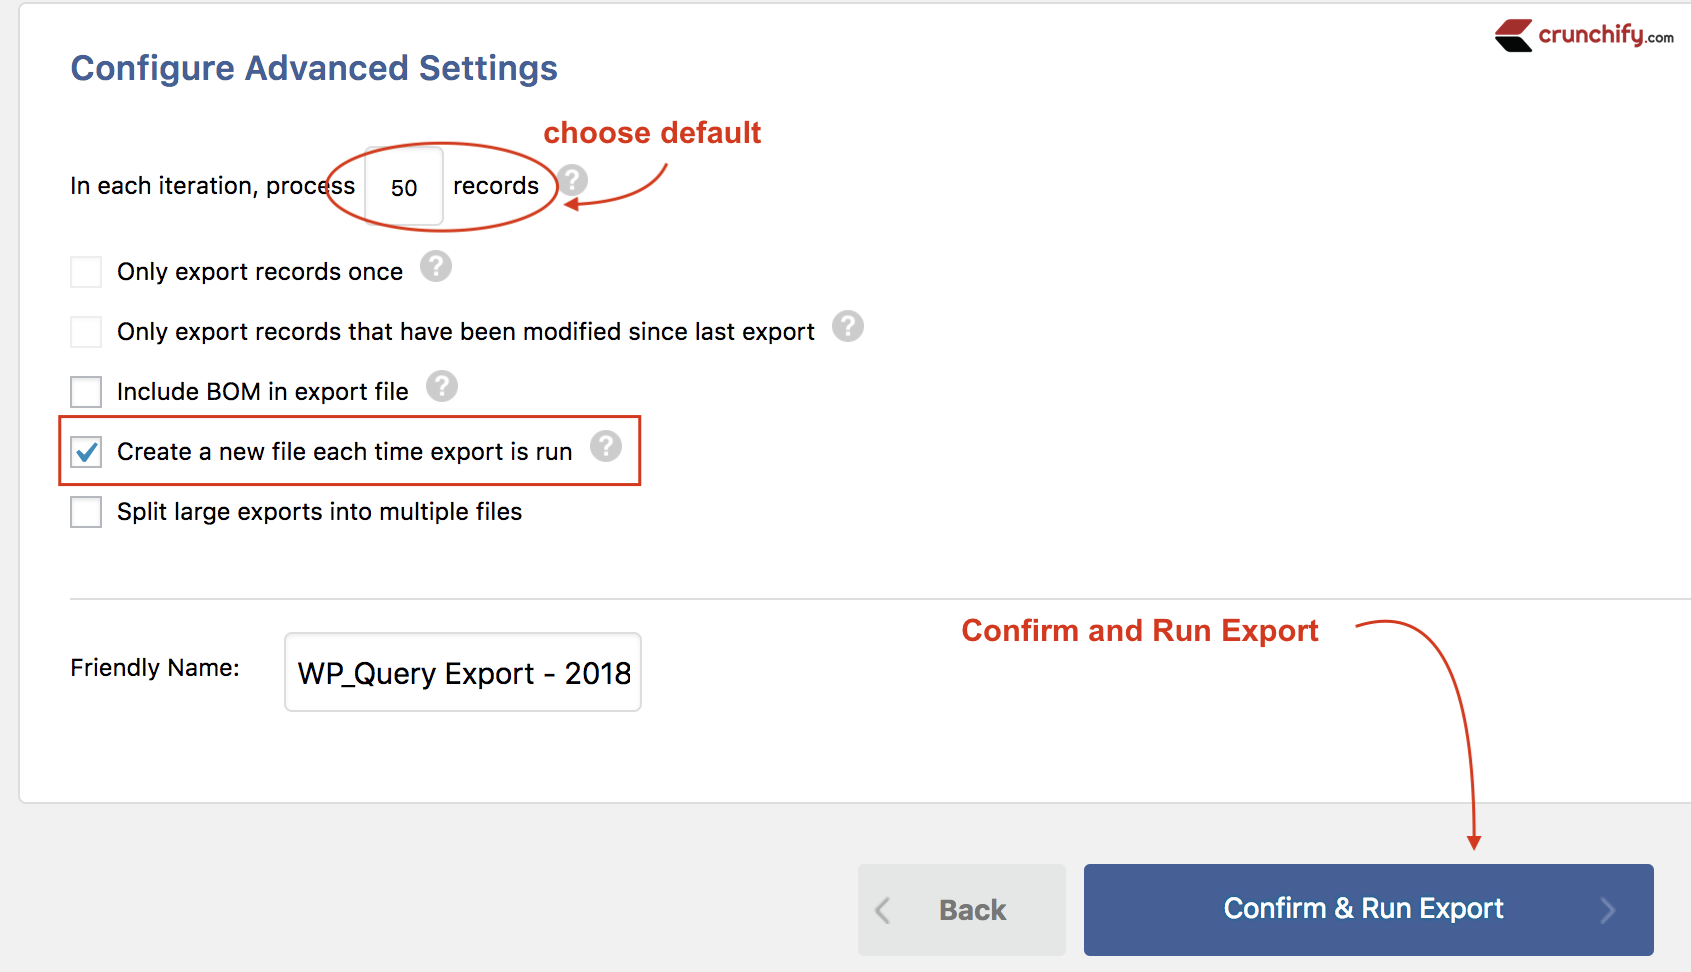 Confirm and Run Export - Crunchify Tips